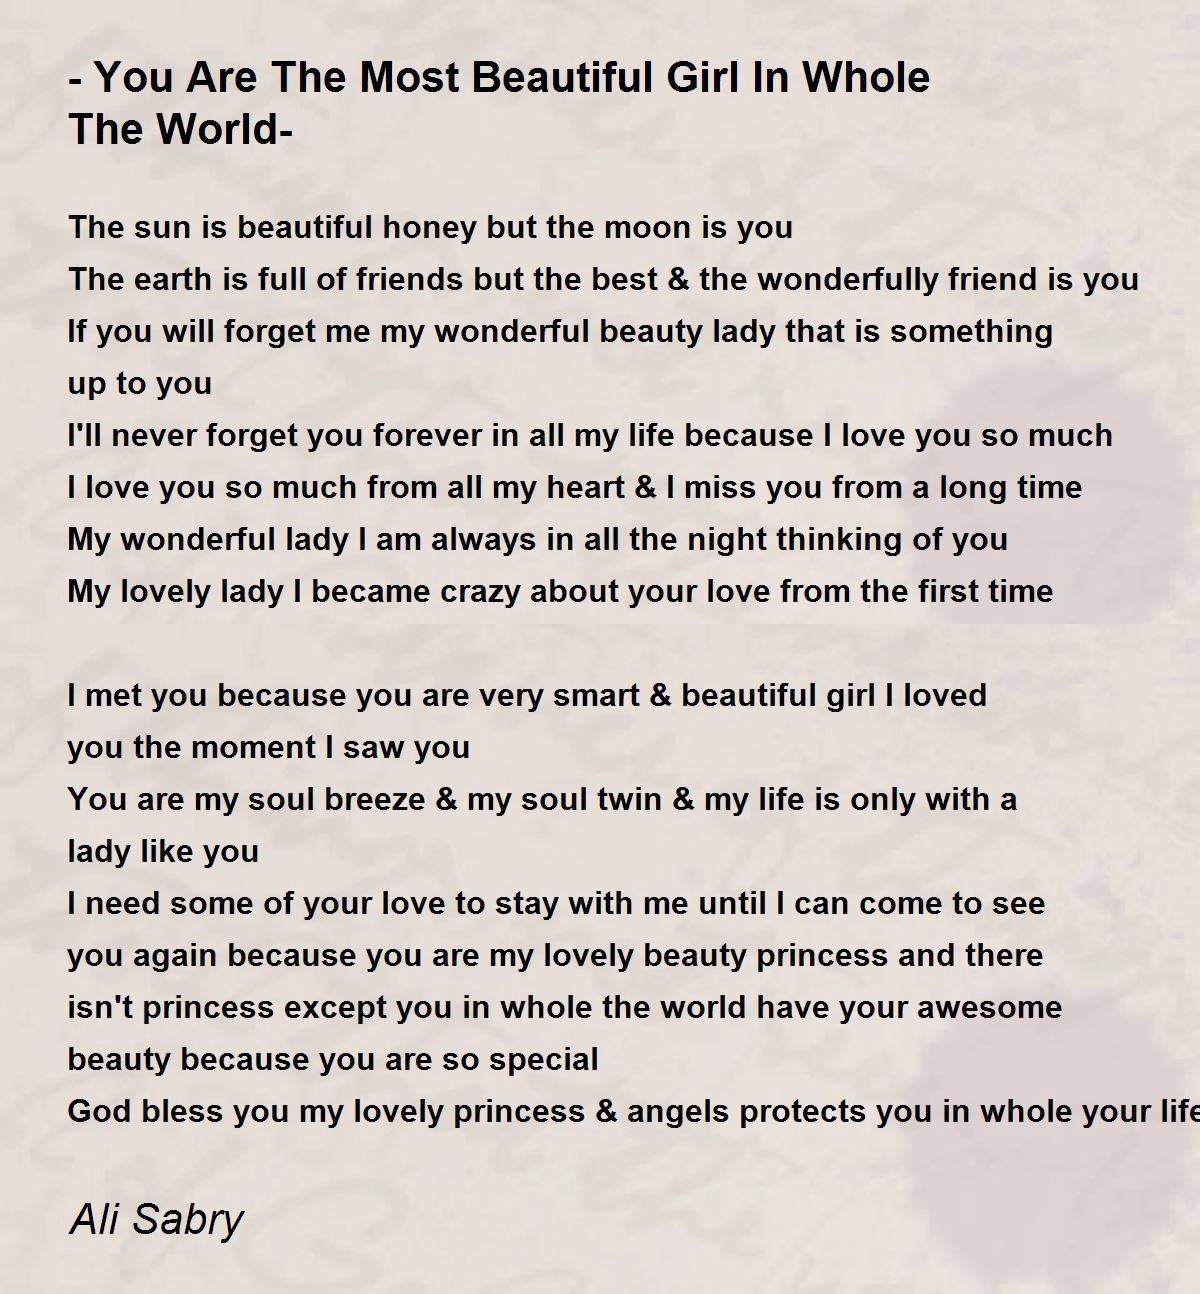 You Are The Most Beautiful Girl In Whole The World Poem By